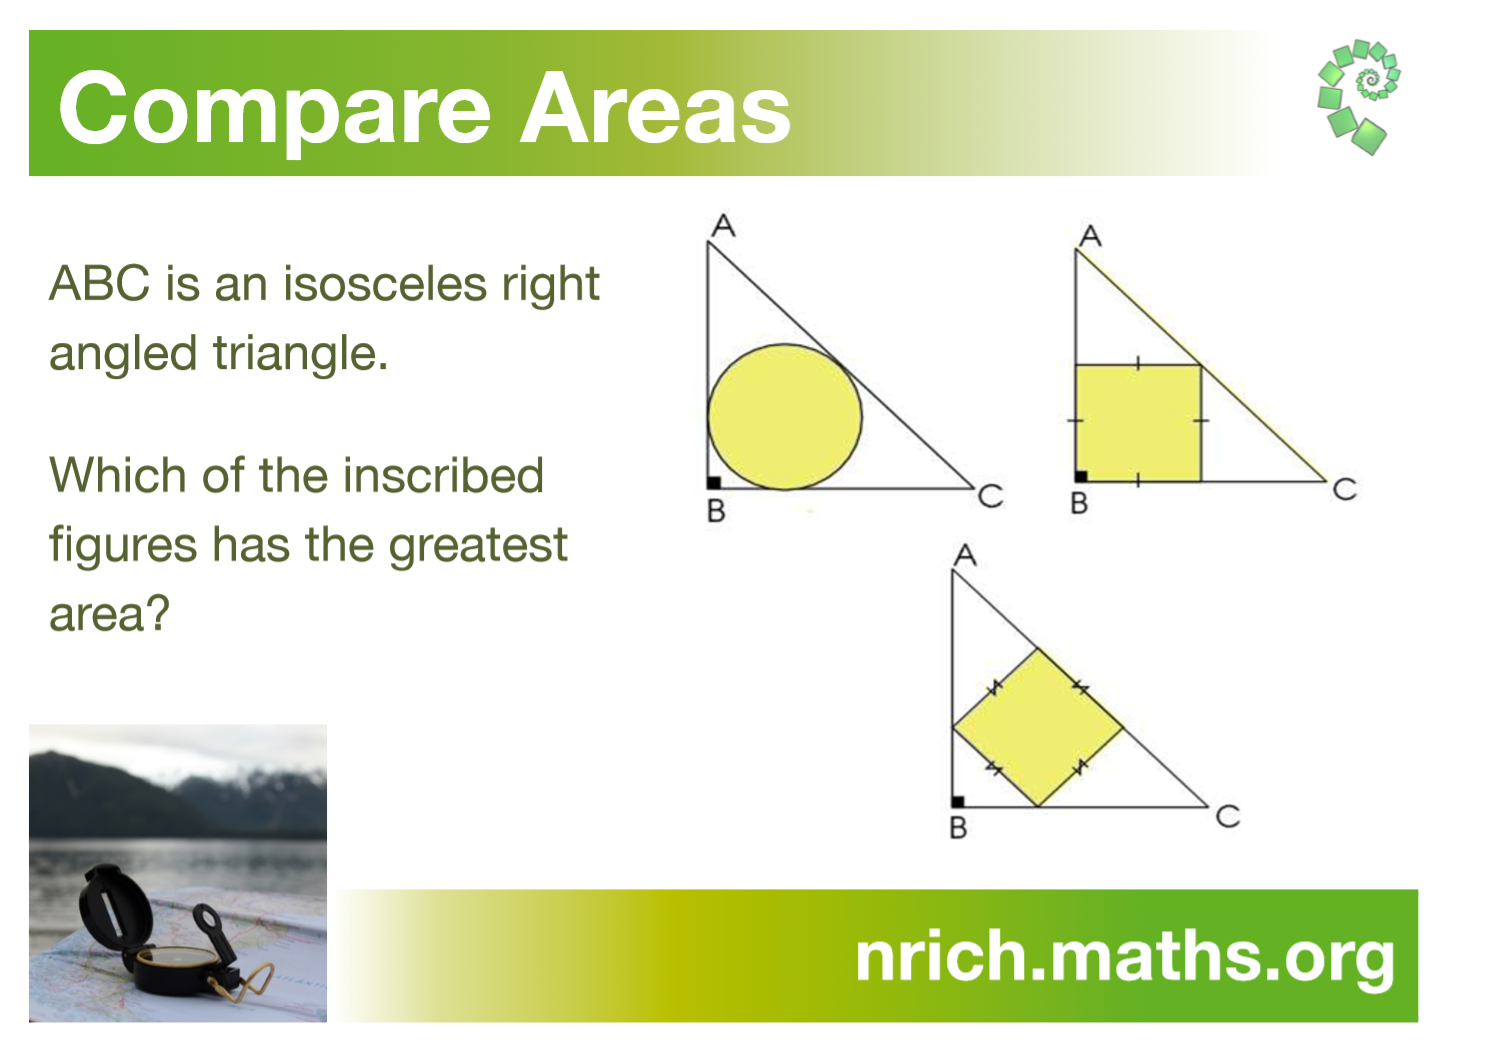 Compare Areas Poster : nrich.maths.org